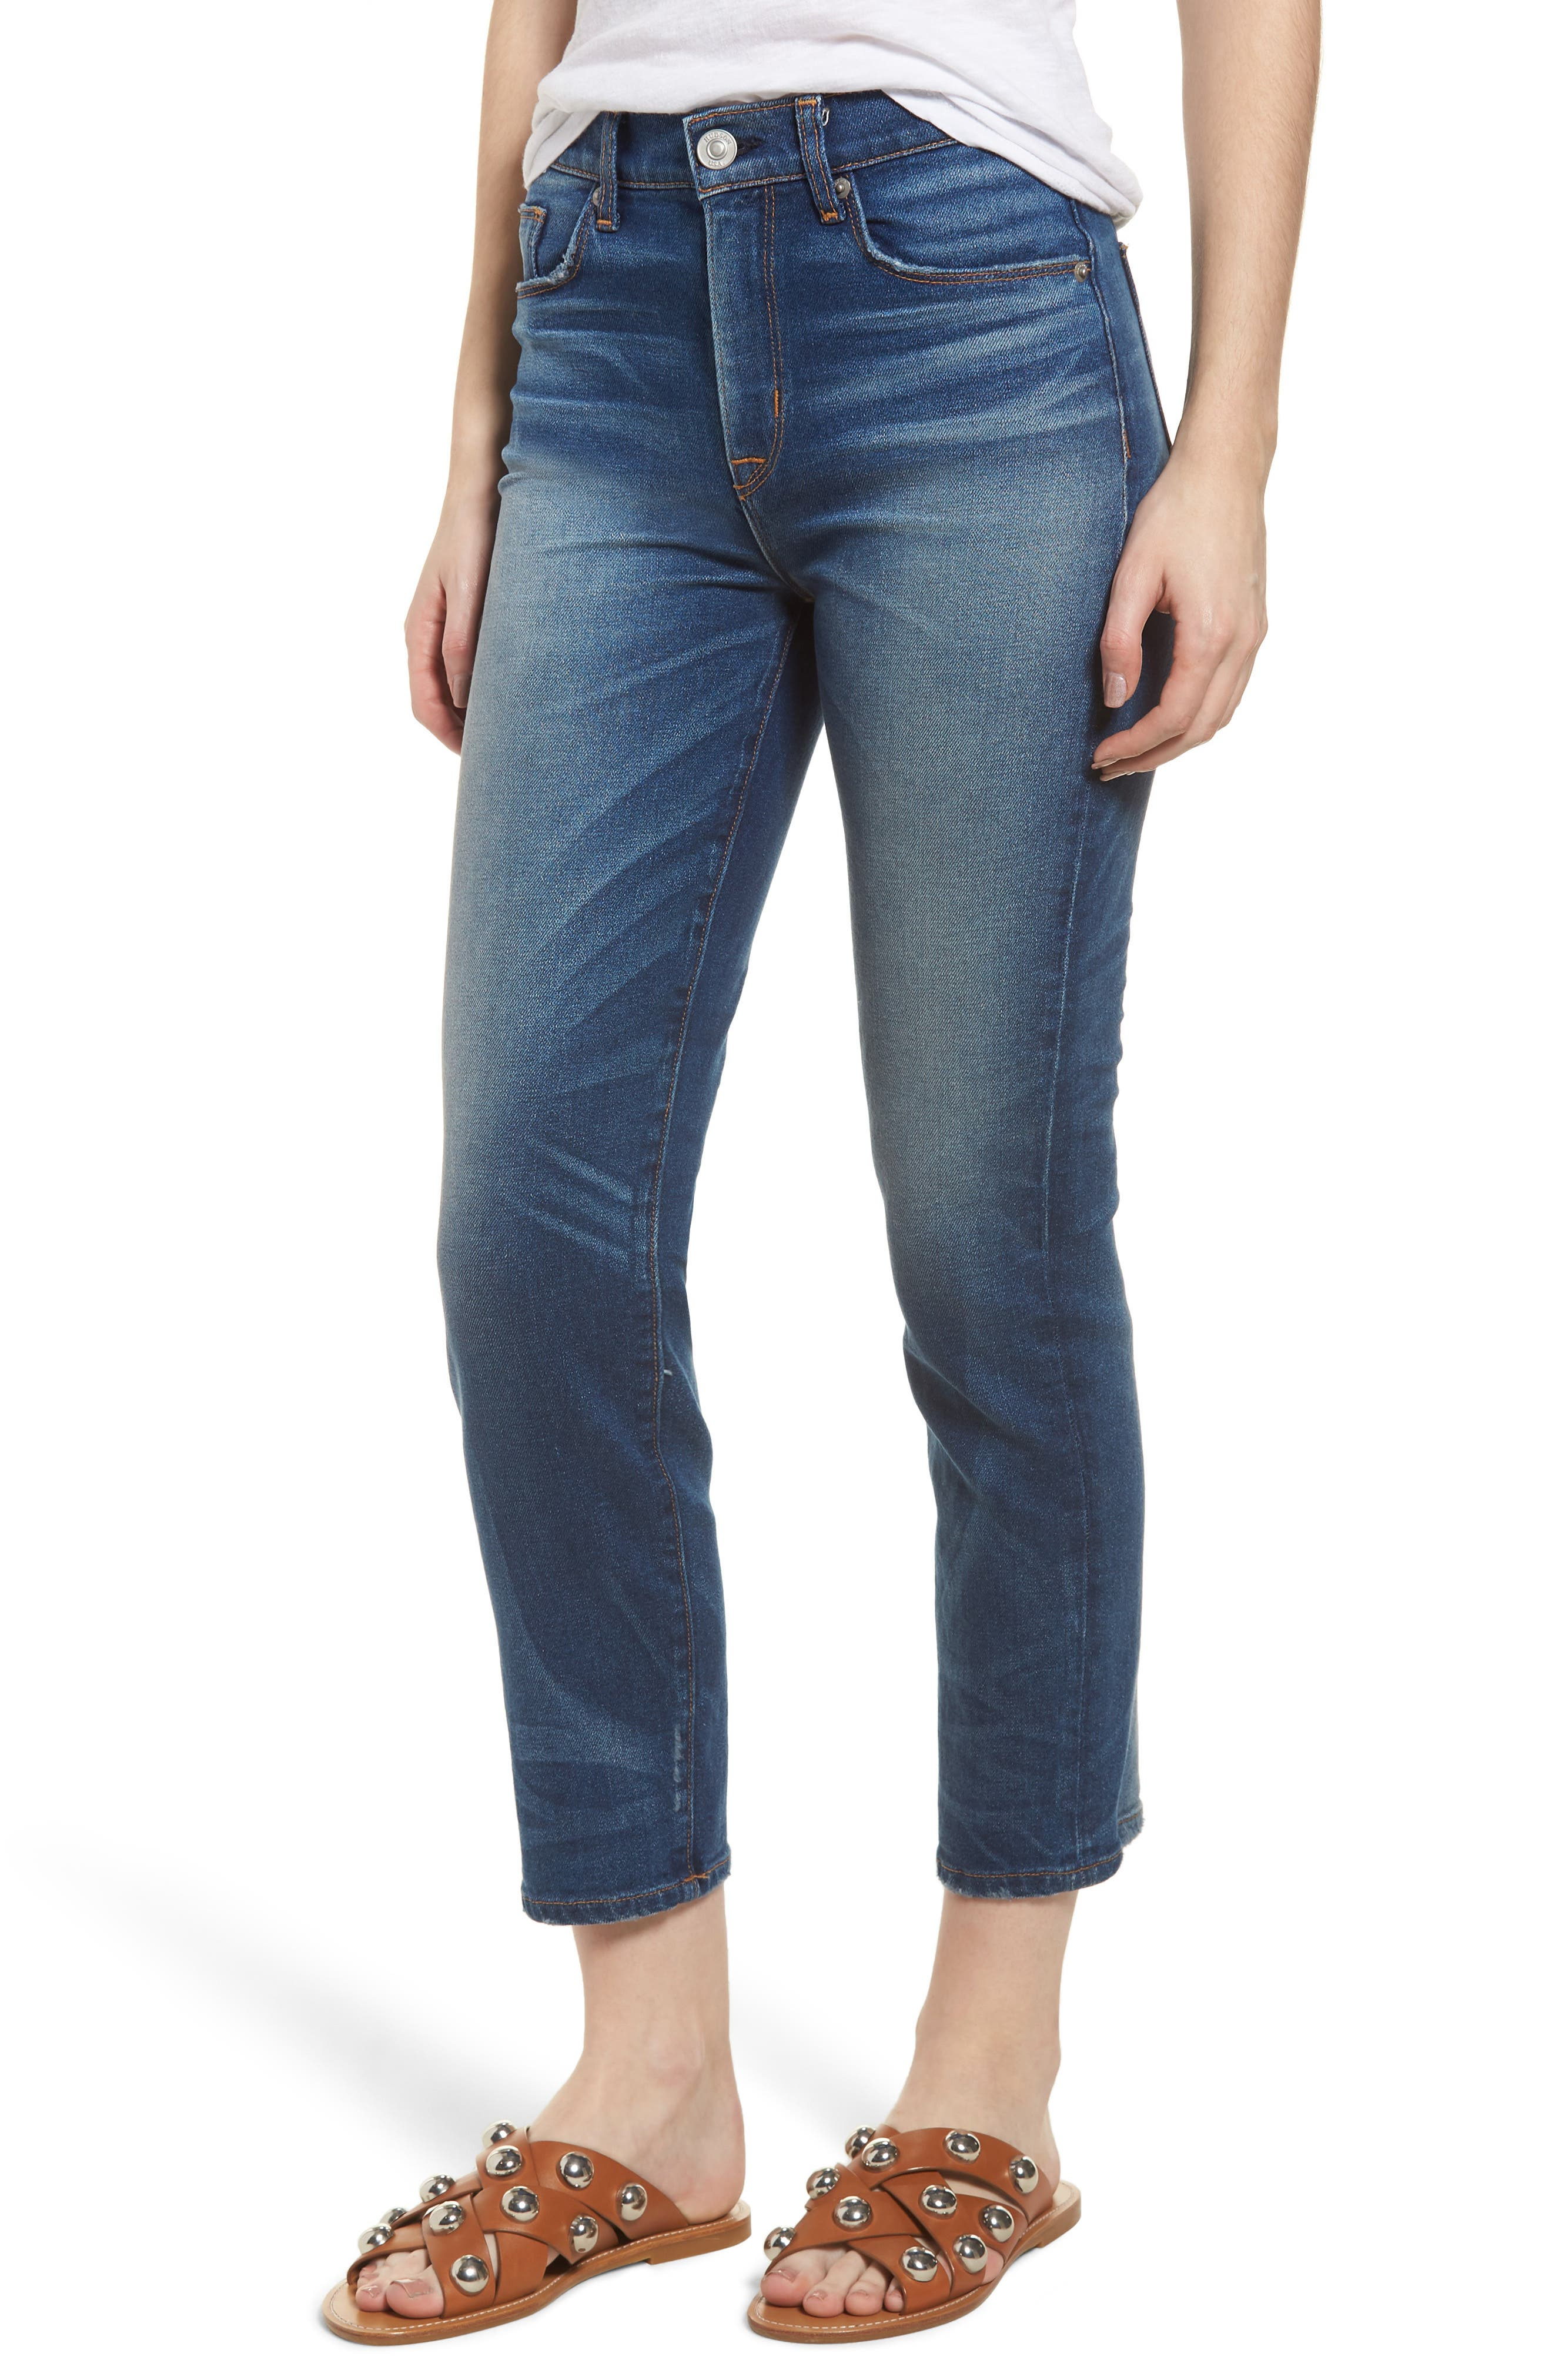 Zoeey High Waist Crop Straight Leg Jeans,                         Main,                         color, Undenied